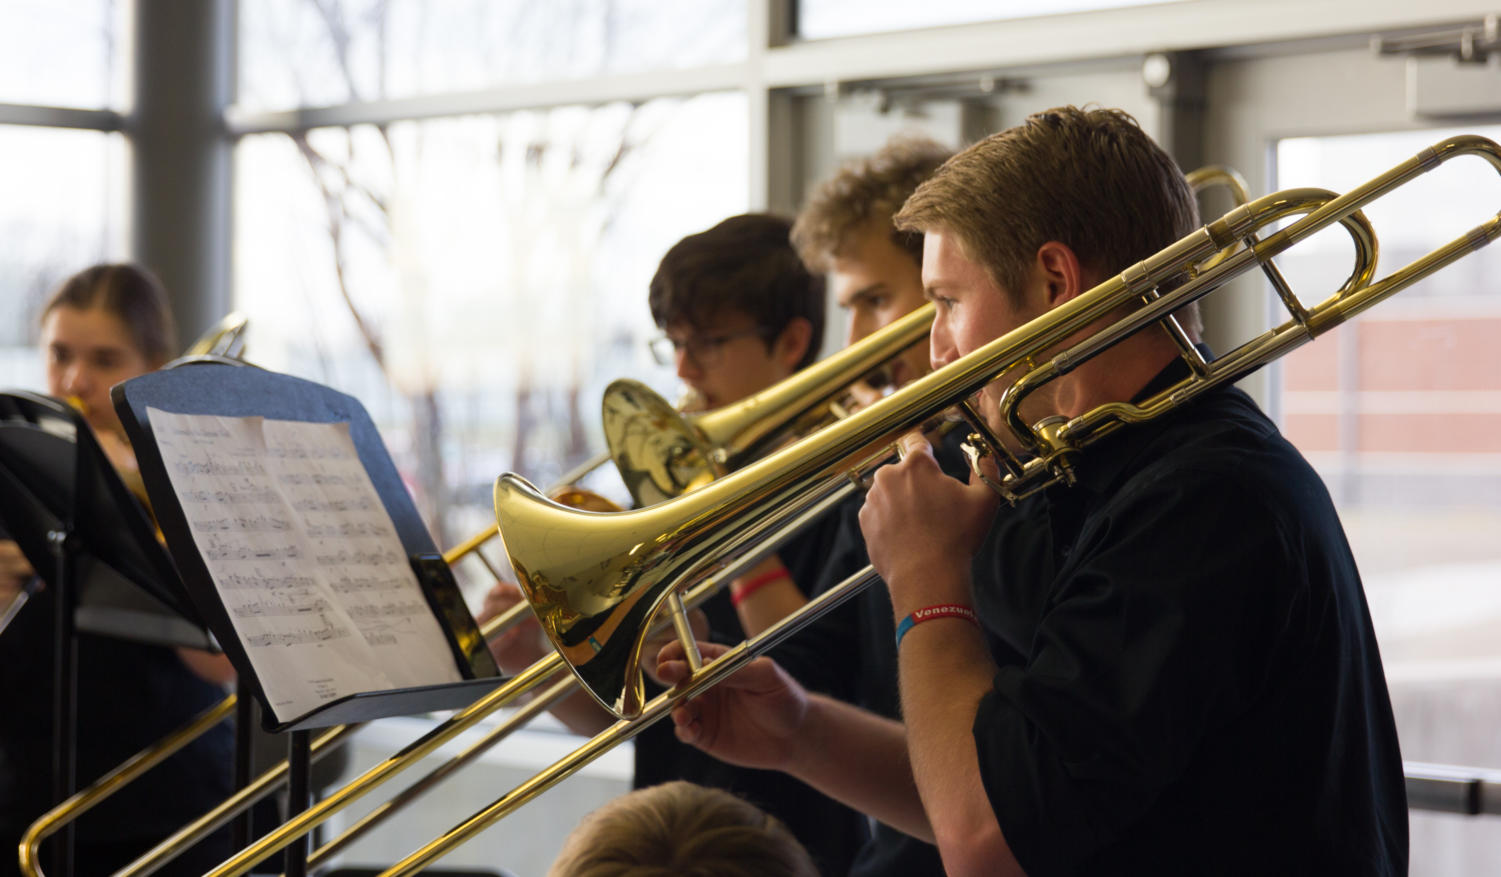 Band students perform at Shine at Argyle High School in Argyle, TX on March 5, 2018. (Katie Ray | The Talon News)